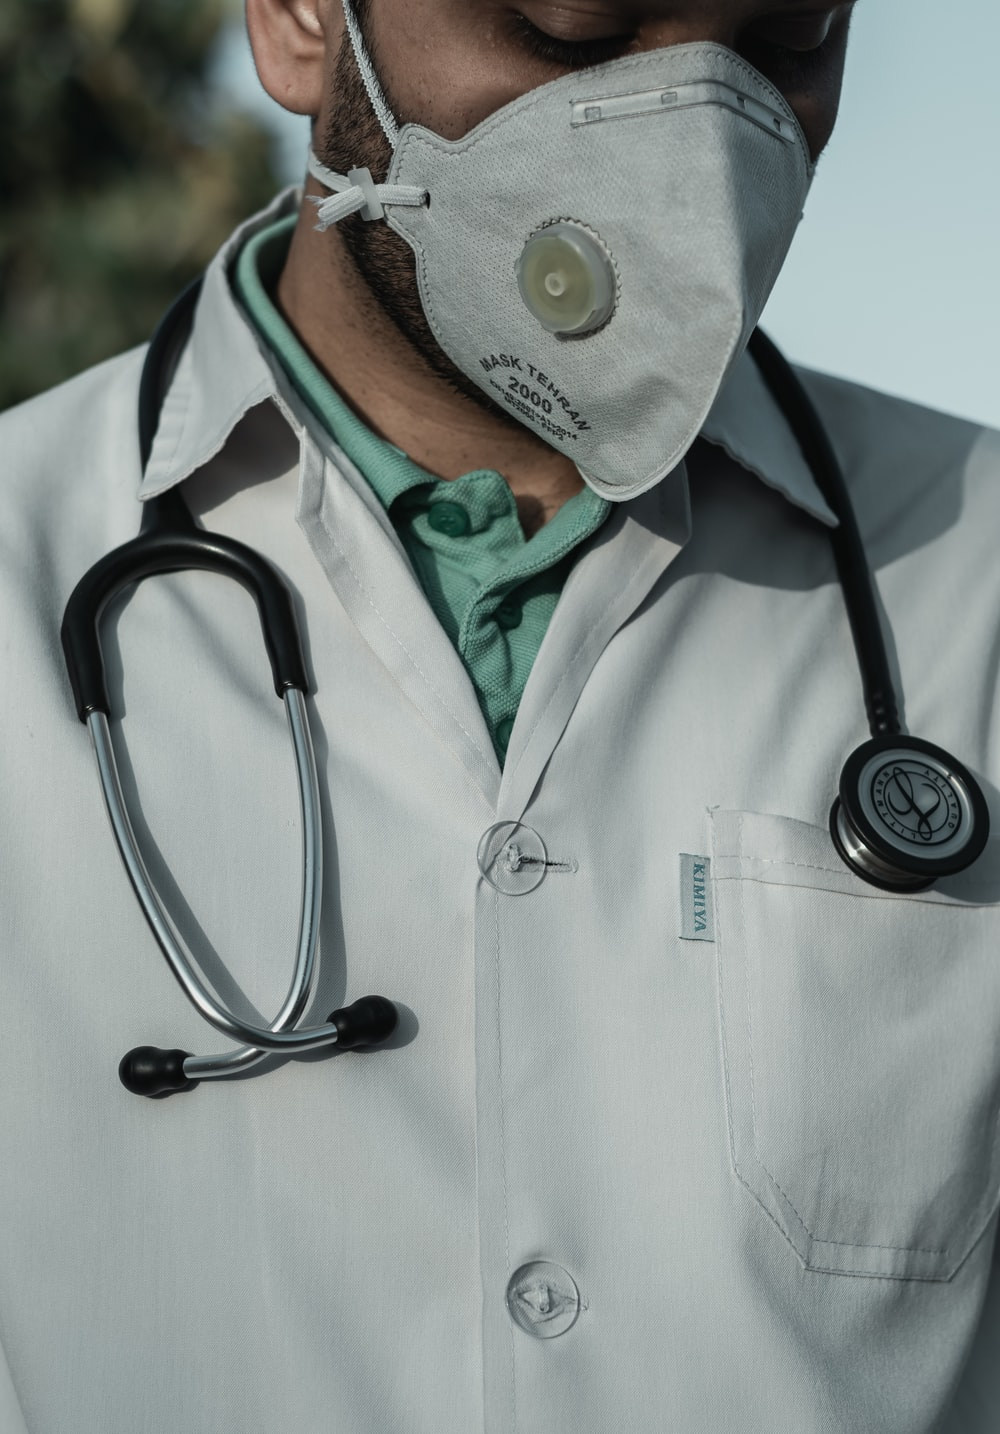 person in white and black stethoscope